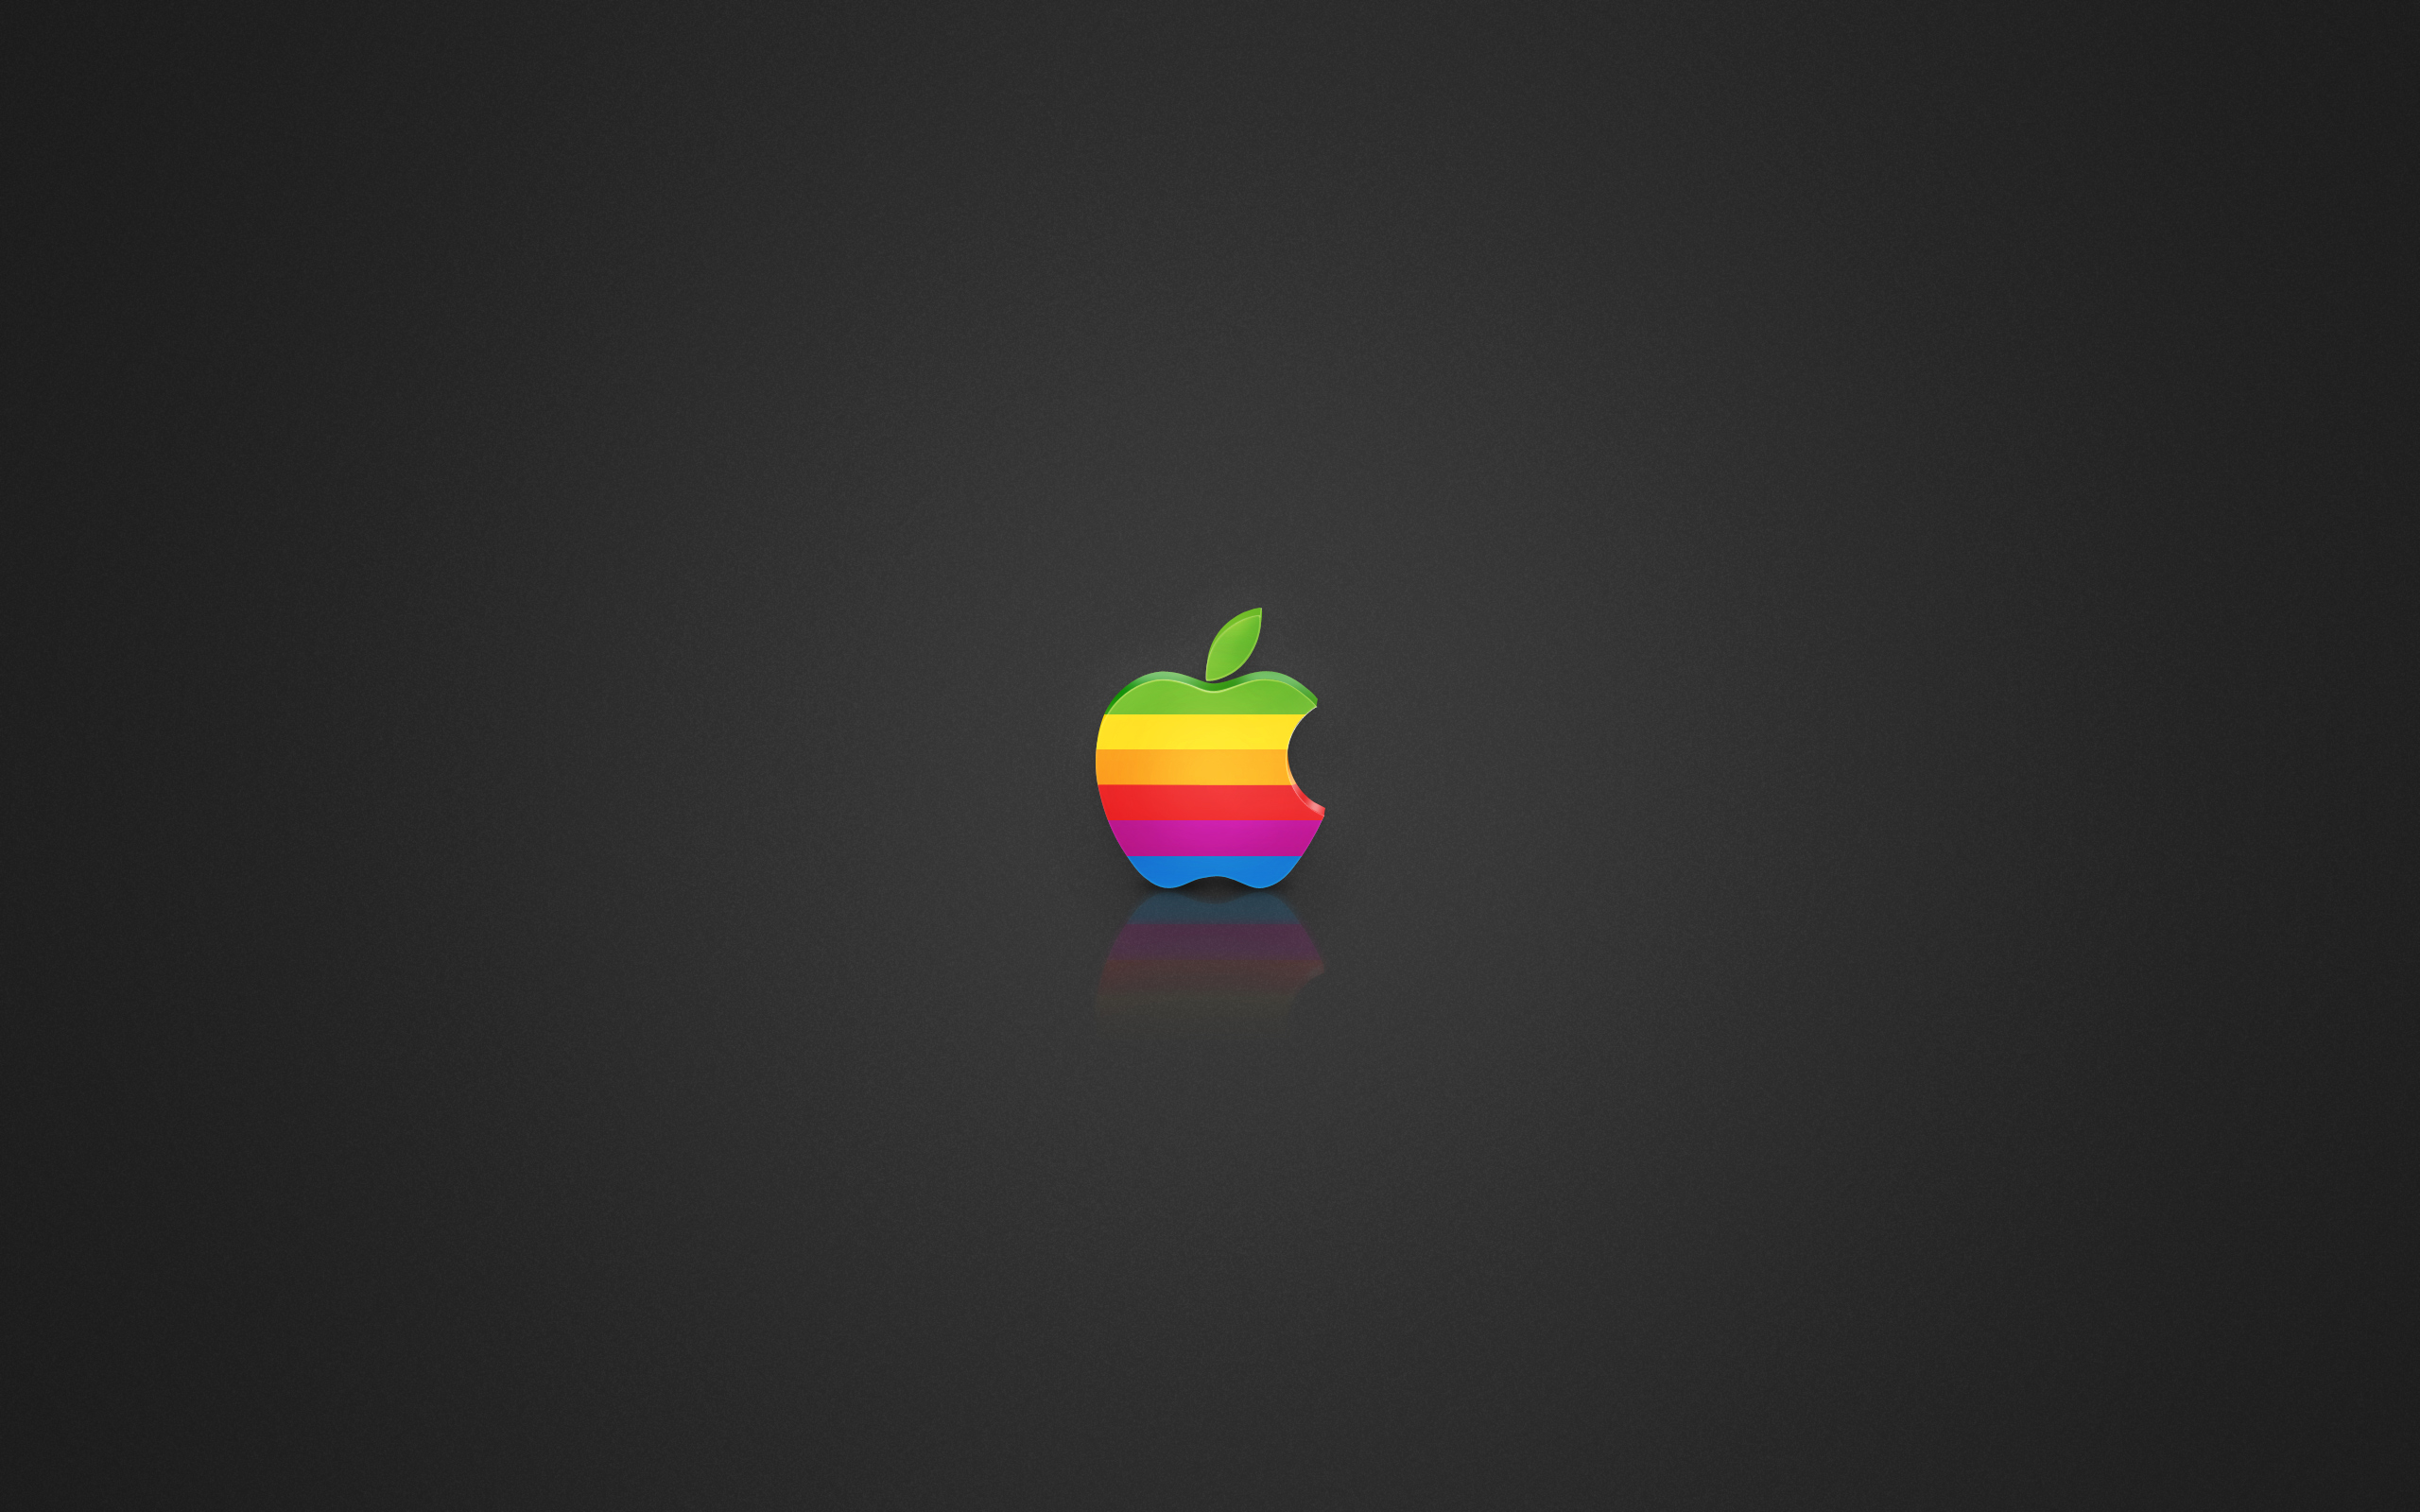 Coloured Apple logo wallpapers | Coloured Apple logo stock photos